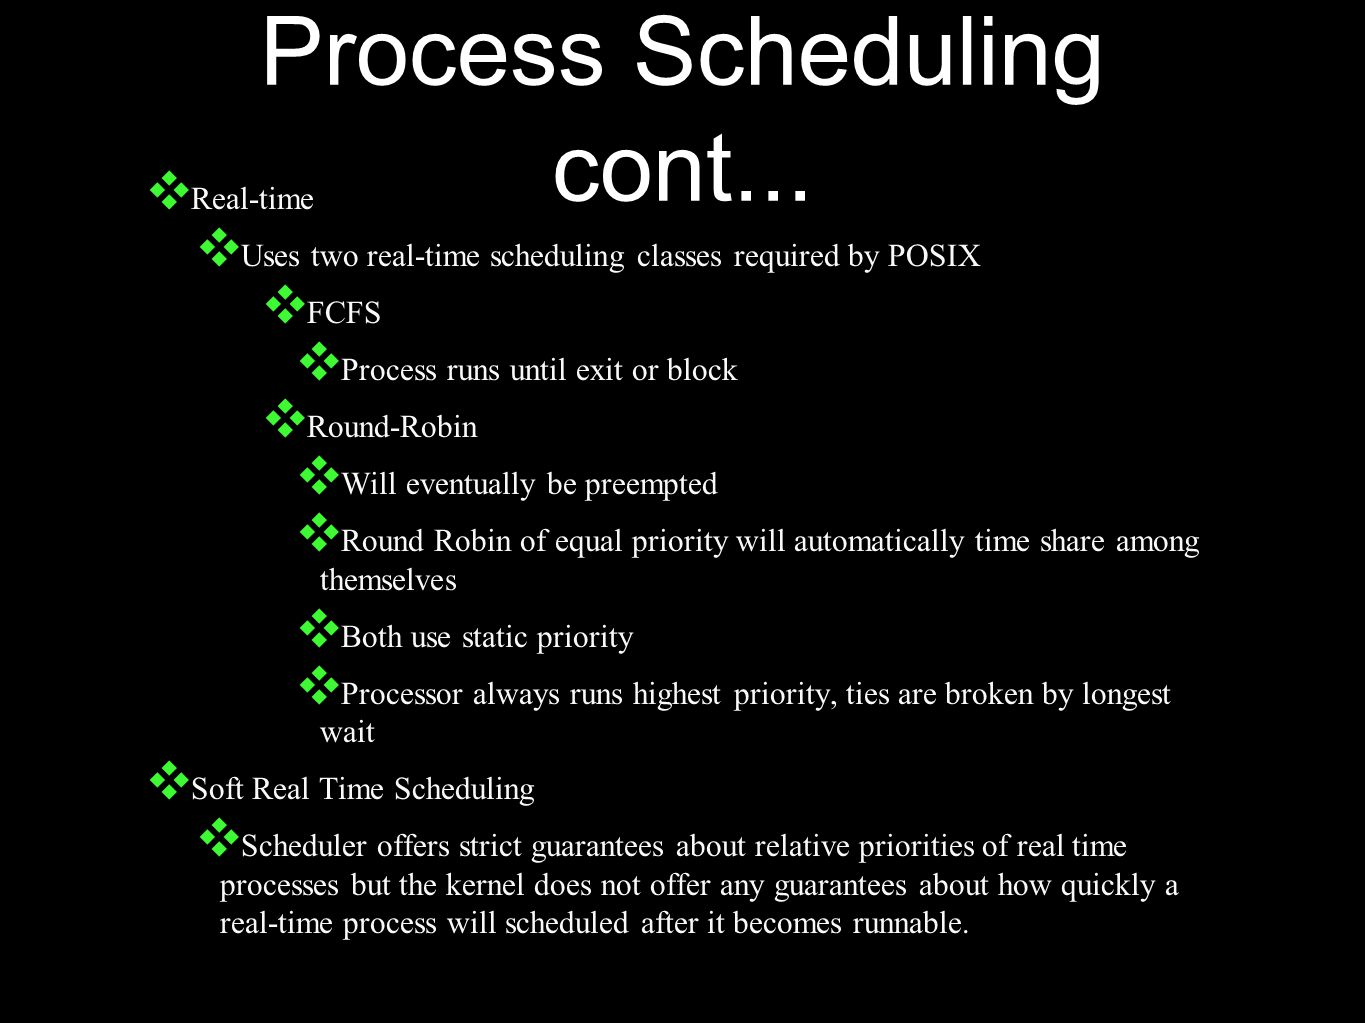 Process Scheduling cont...